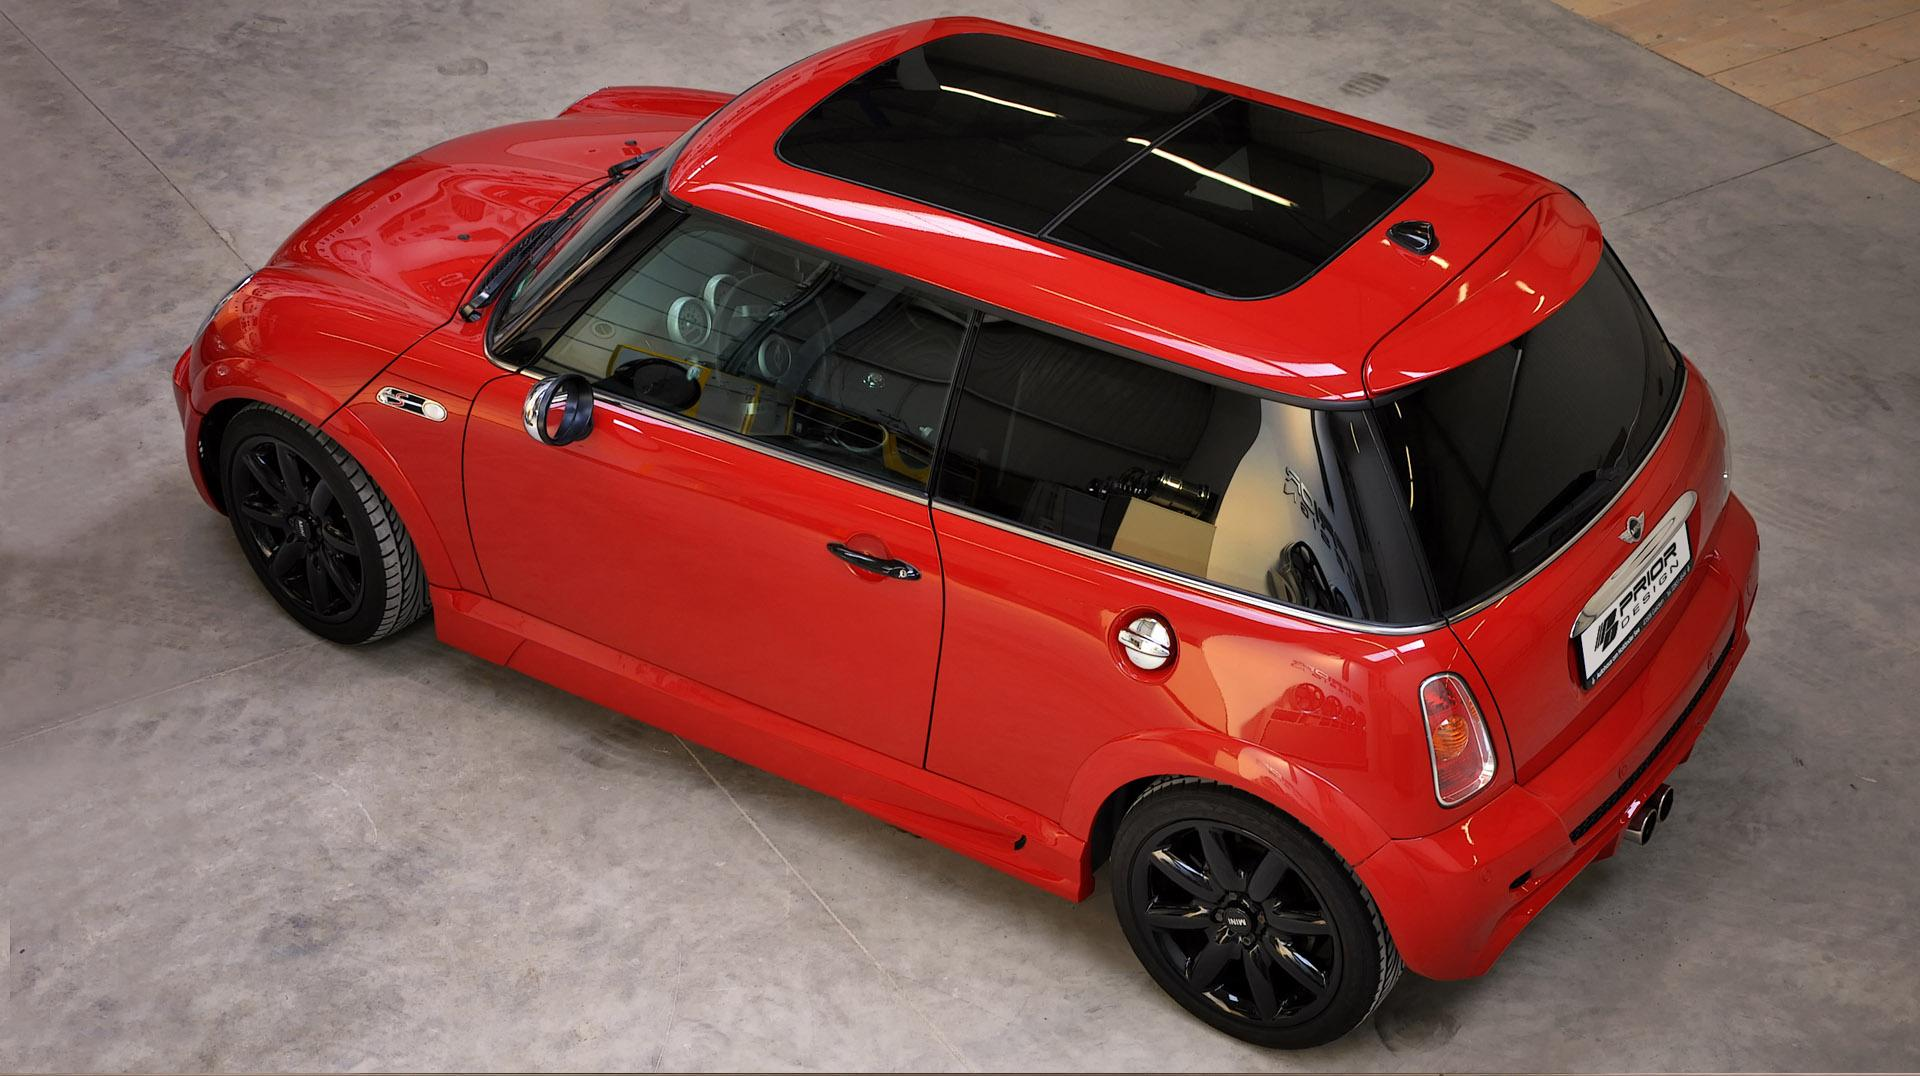 My Perfect Mini Cooper 3dtuning Probably The Best Car Configurator